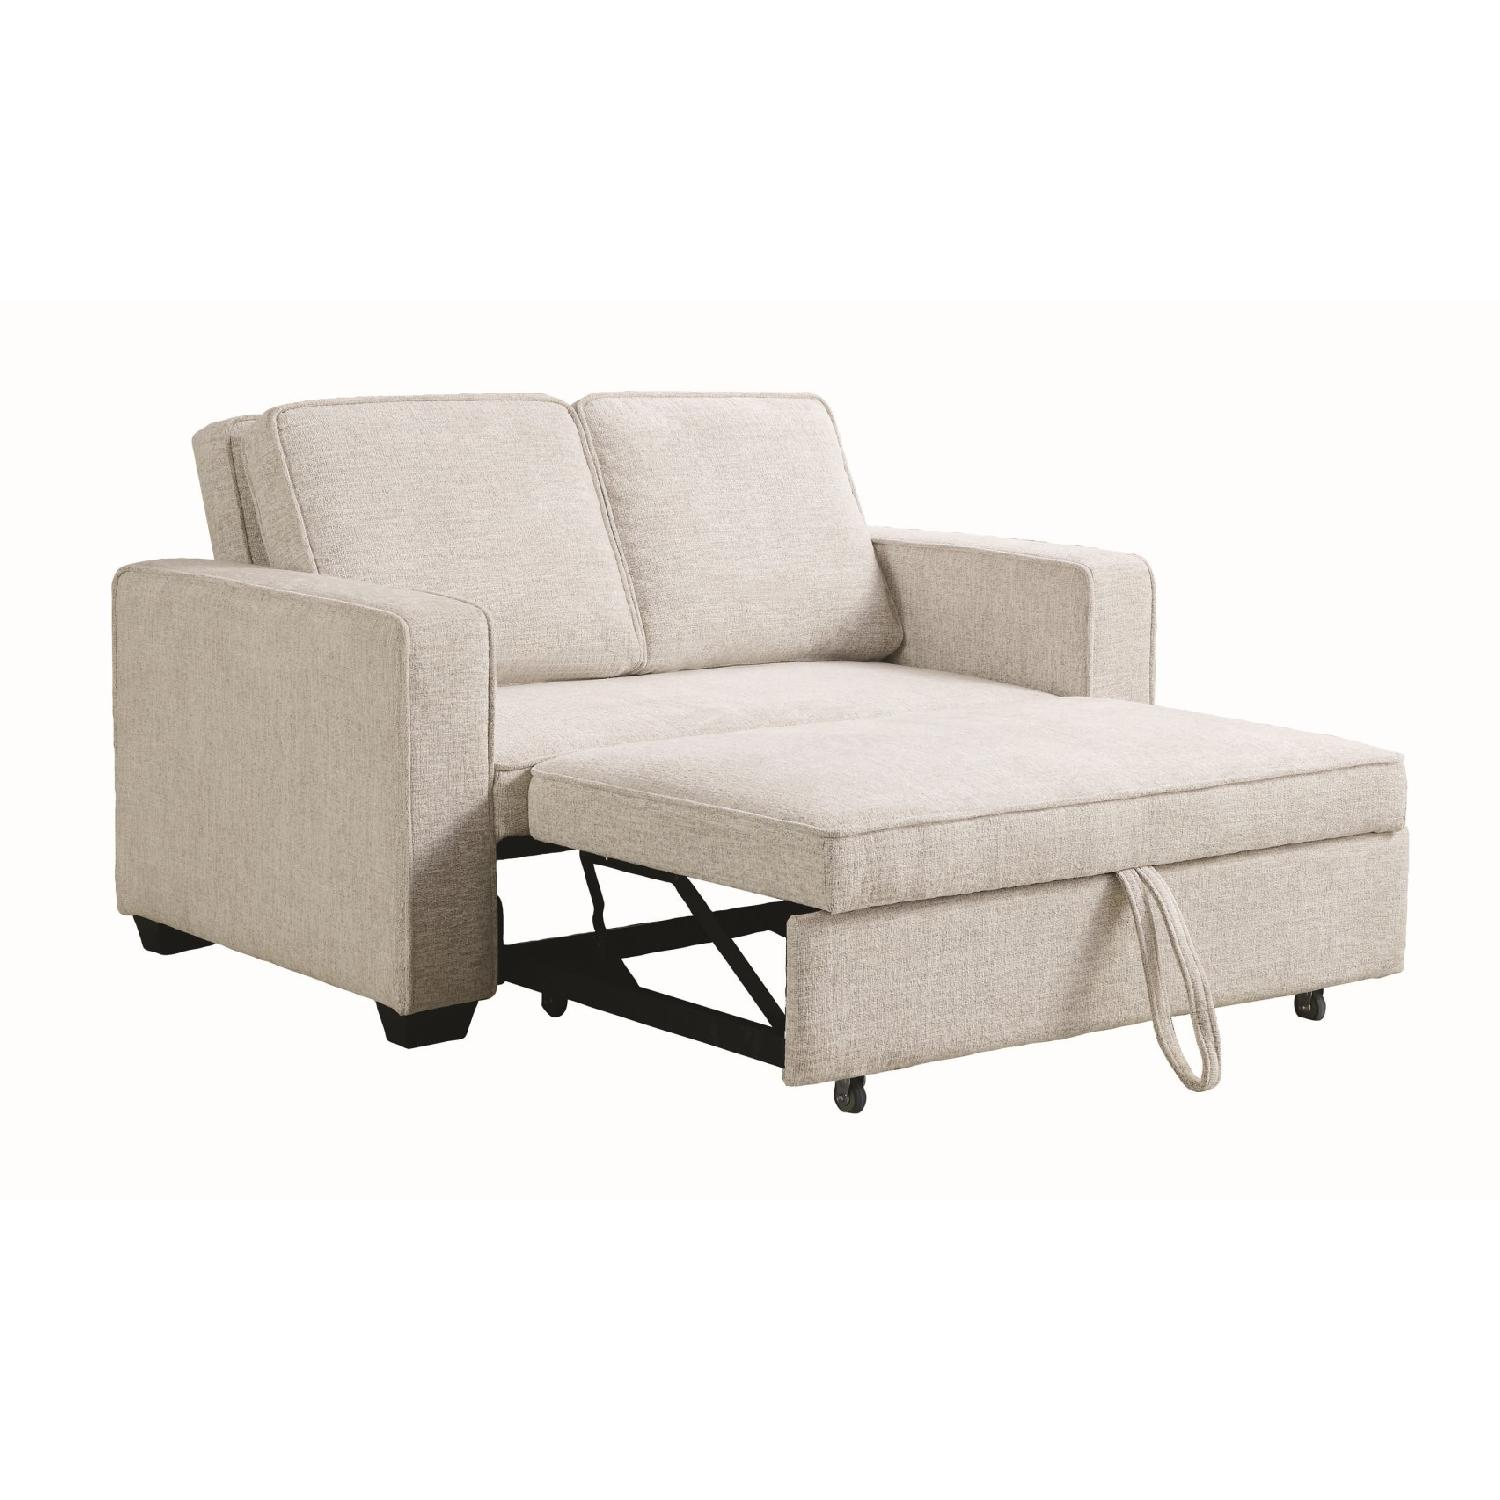 Compact Sofabed in Beige Chenille Fabric w/ Pull-Out Sleeper - image-2